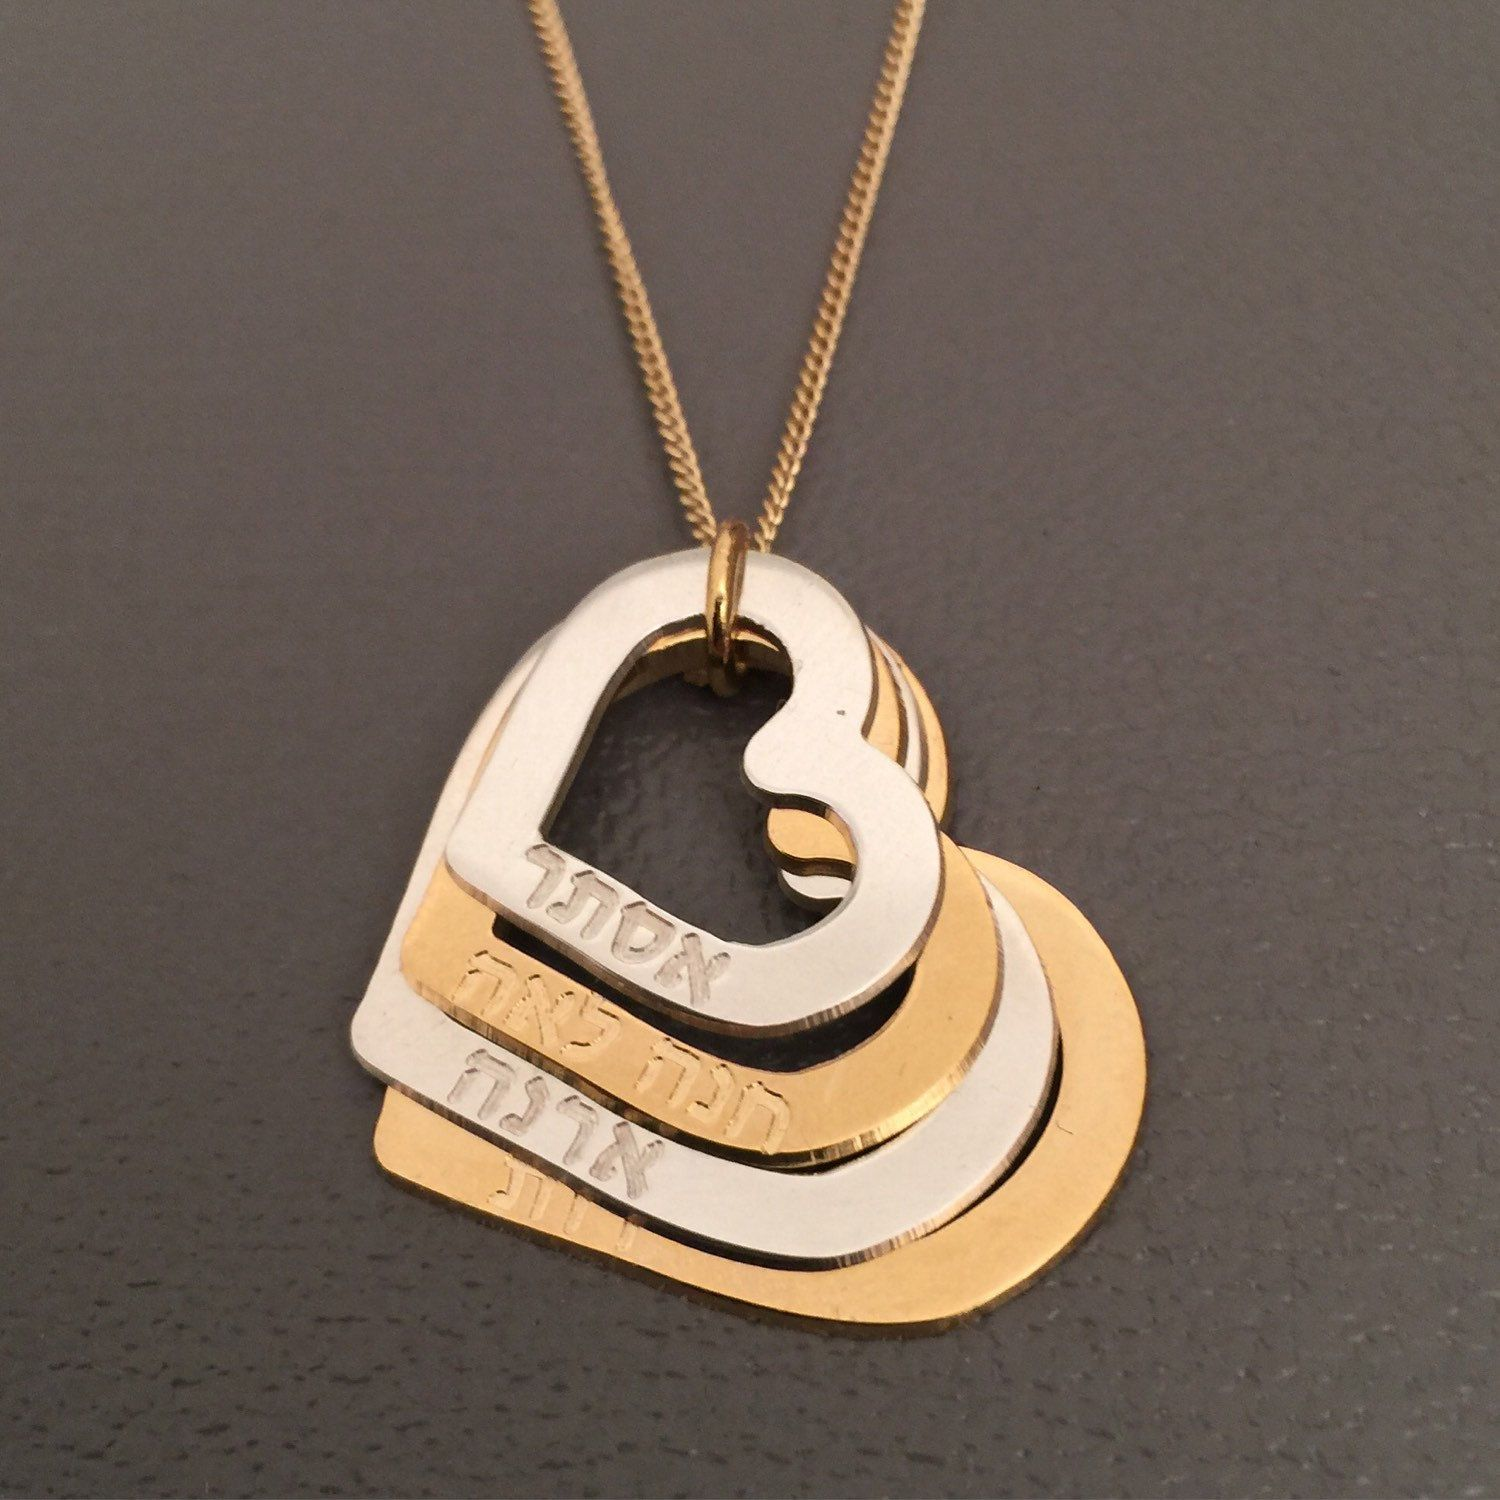 Mom necklace names hearts mothers day gifts mothers necklace mommy necklace childrens names hearts gold silver aloadofball Gallery